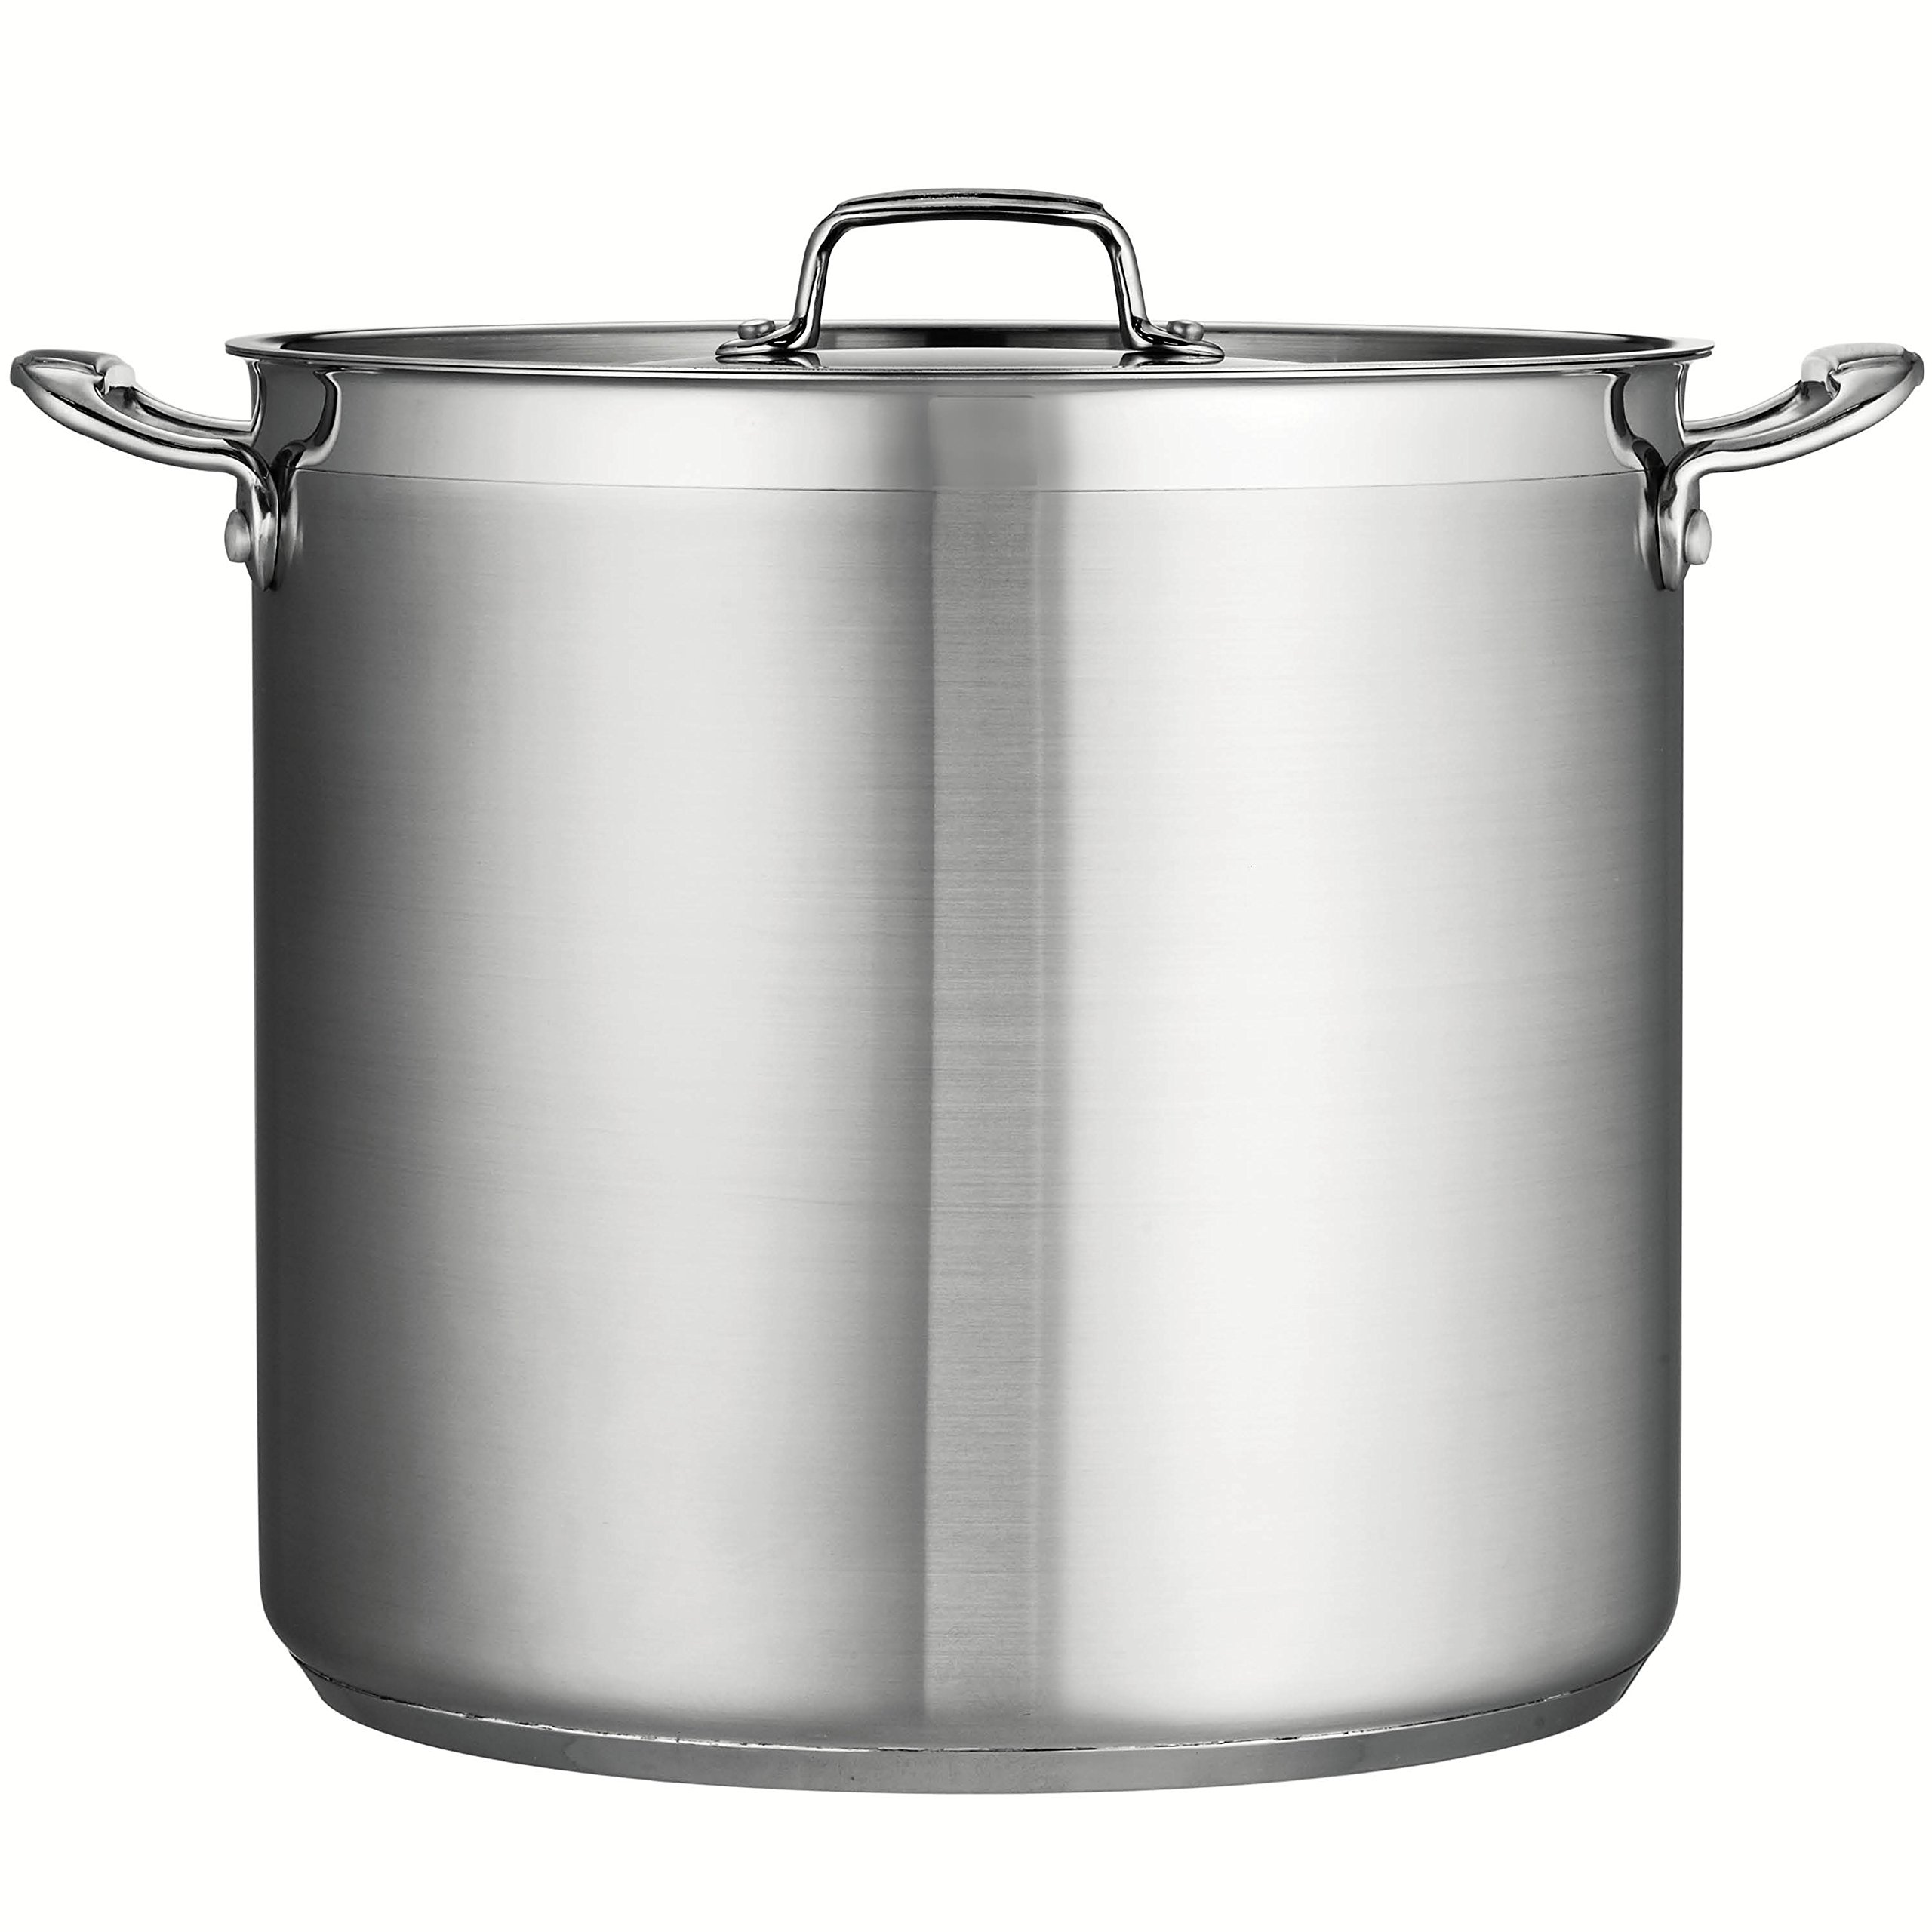 Tramontina 80120/003DS Tramontina Gourmet Stainless Steel Covered Stock Pot, 24-Quart by Tramontina (Image #2)